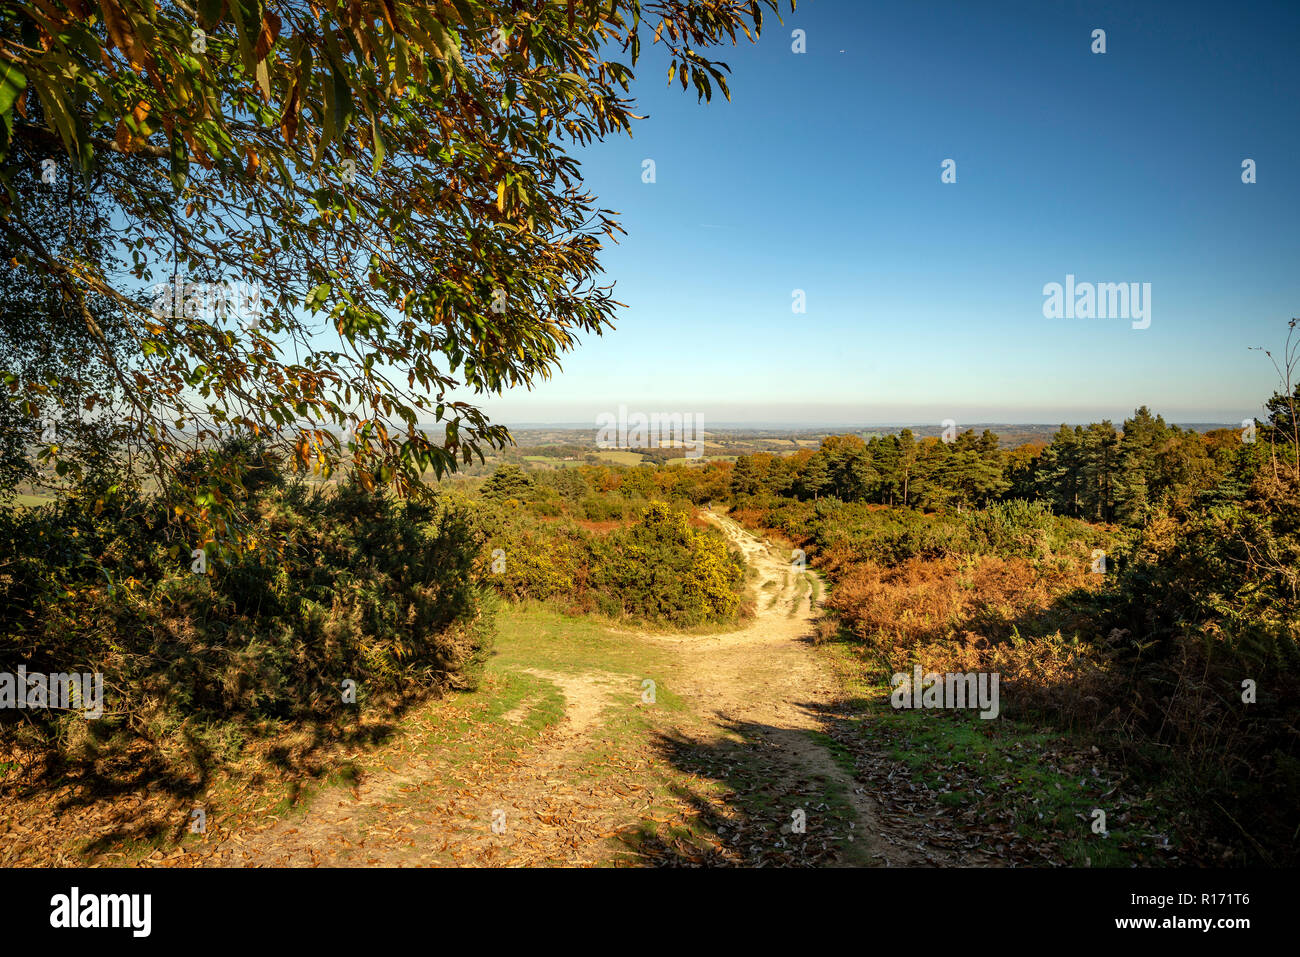 The view from Gills Lap in Ashdown Forest, East Sussex, UK - Stock Image